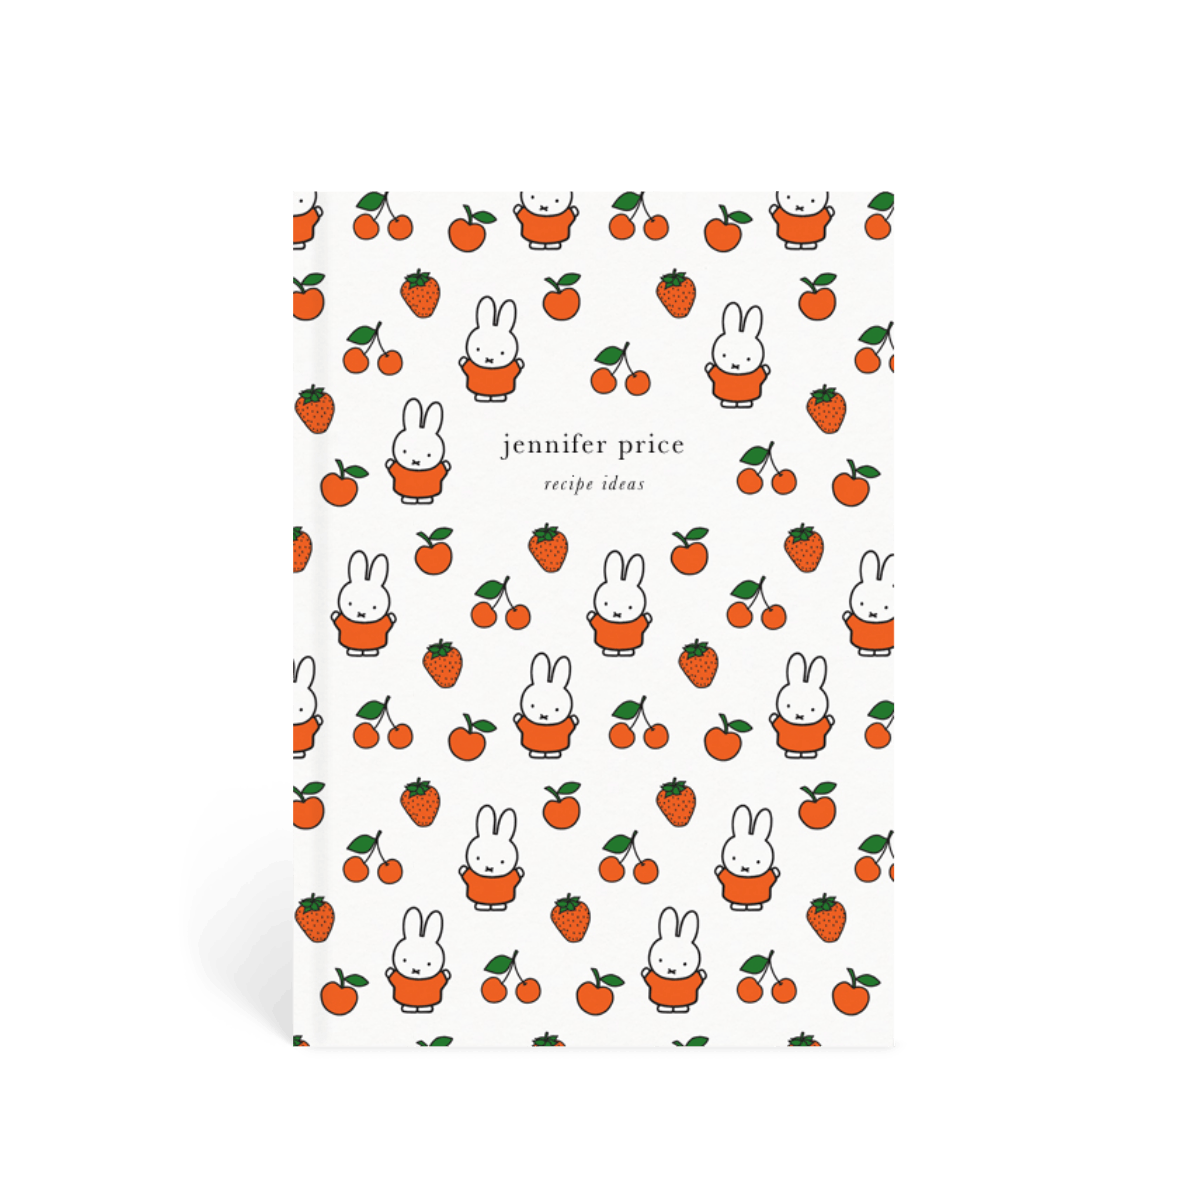 Https%3a%2f%2fwww.papier.com%2fproduct image%2f95589%2f25%2fstrawberry miffy 23969 front 1572966802.png?ixlib=rb 1.1